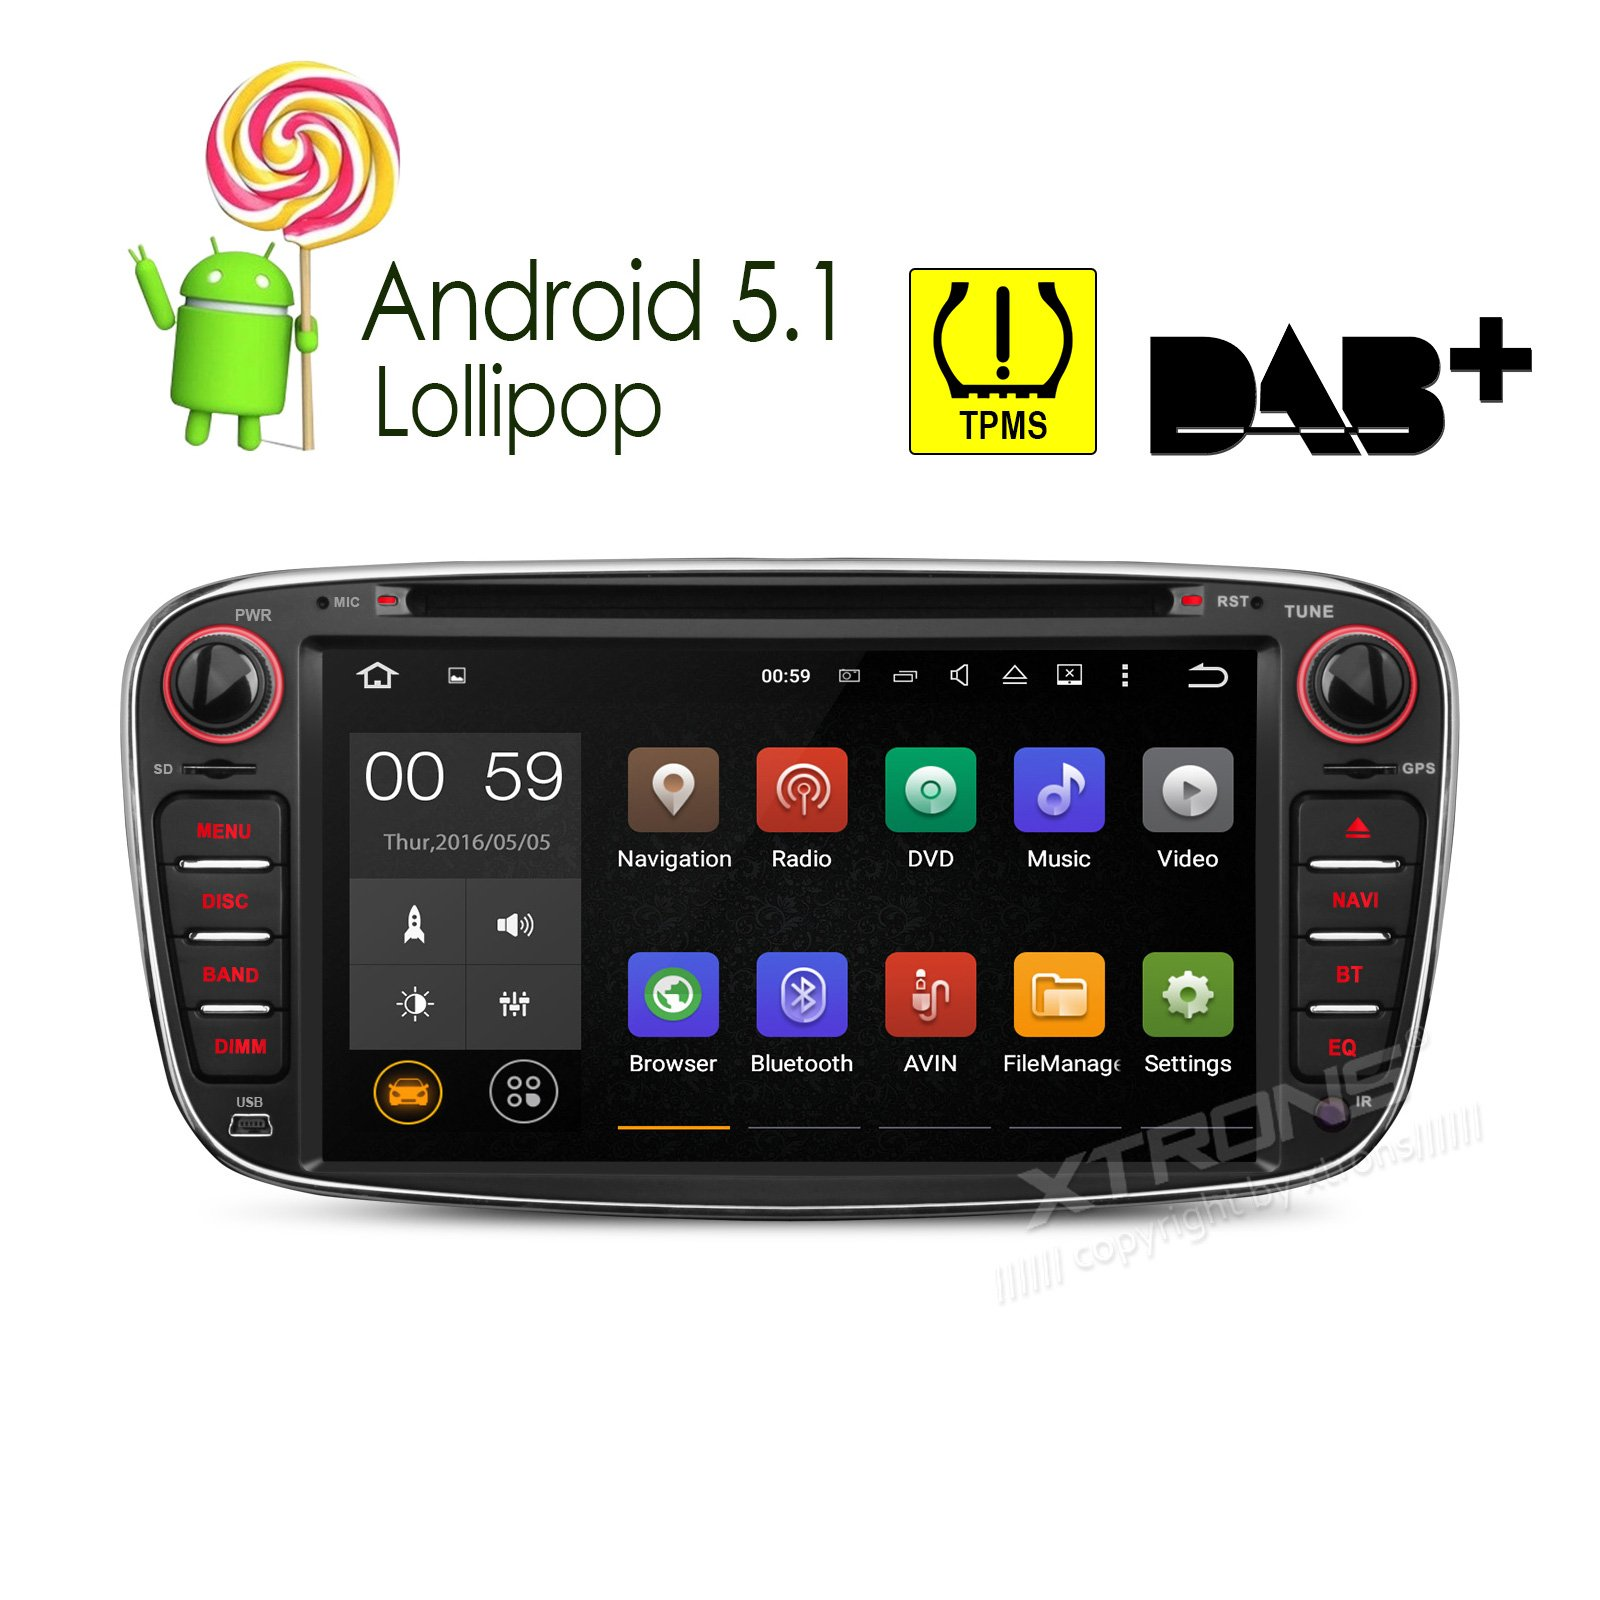 XTRONS Quad Core 7'' Android 5.1 Lollipop Car CD DVD GPS 2 DIN Stereo Radio Tire Pressure Monitoring for Ford FOCUS